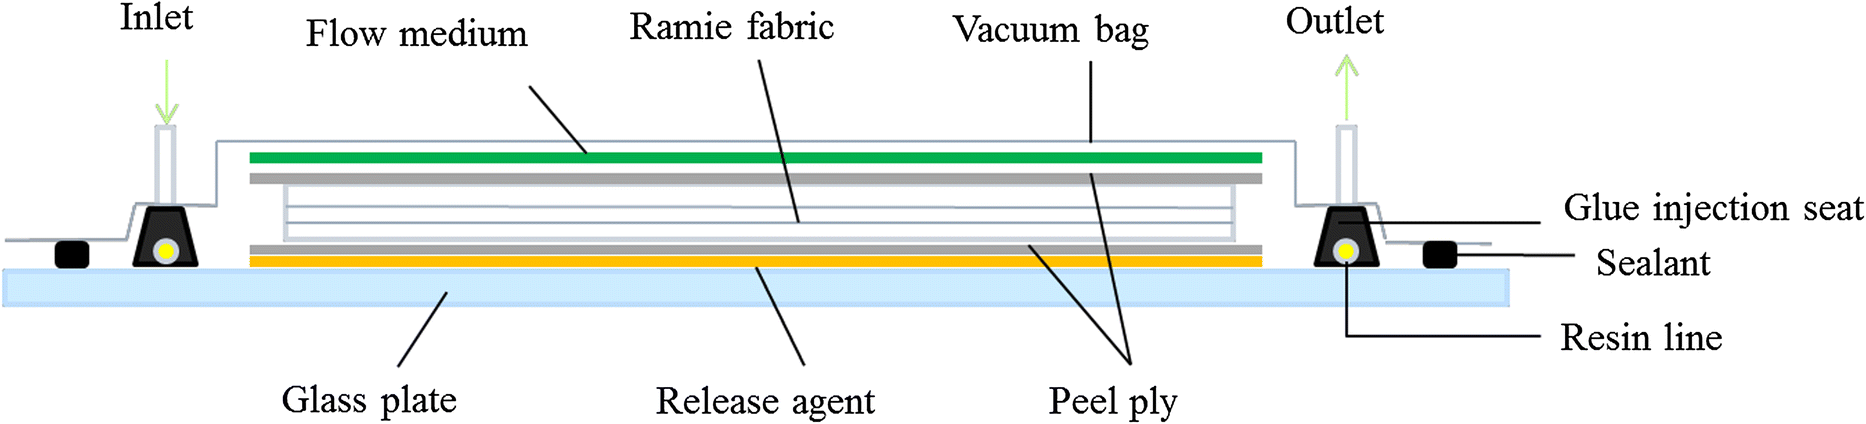 Surface modification of ramie fibers with silanized CNTs